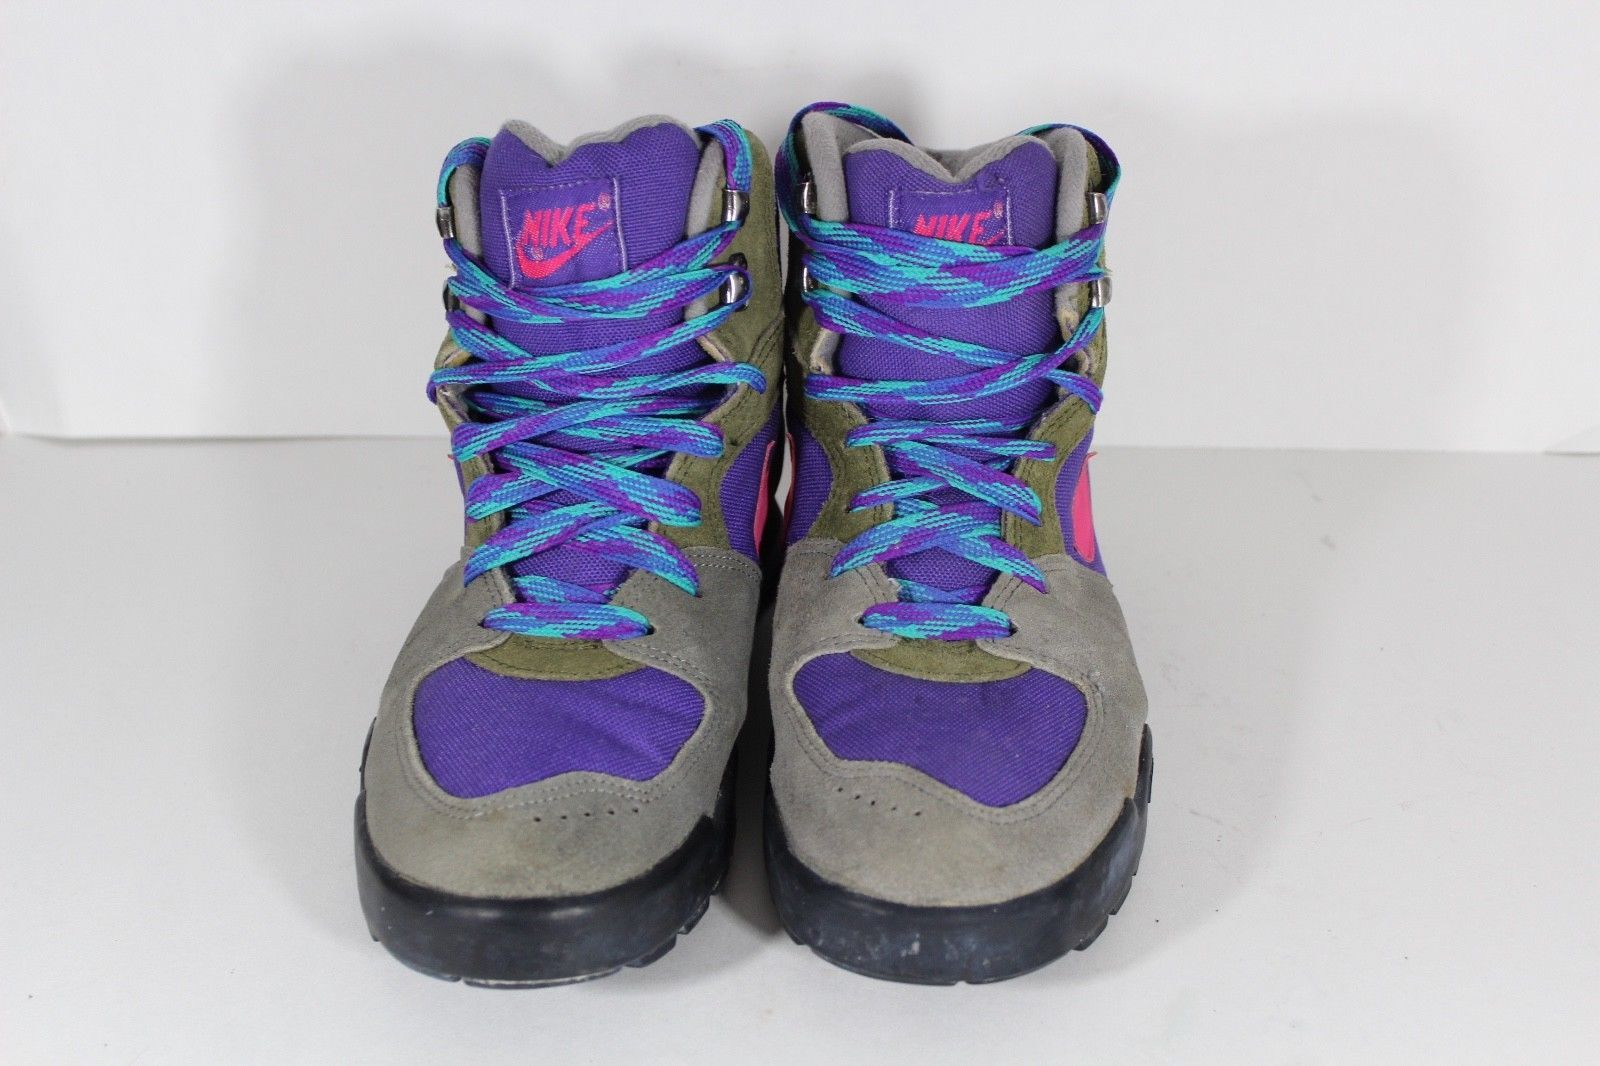 abfdc02125a98 Vintage 90s NIKE Womens Size 9 Spell Out Caldera Suede Hiking Boots Gray  Pink